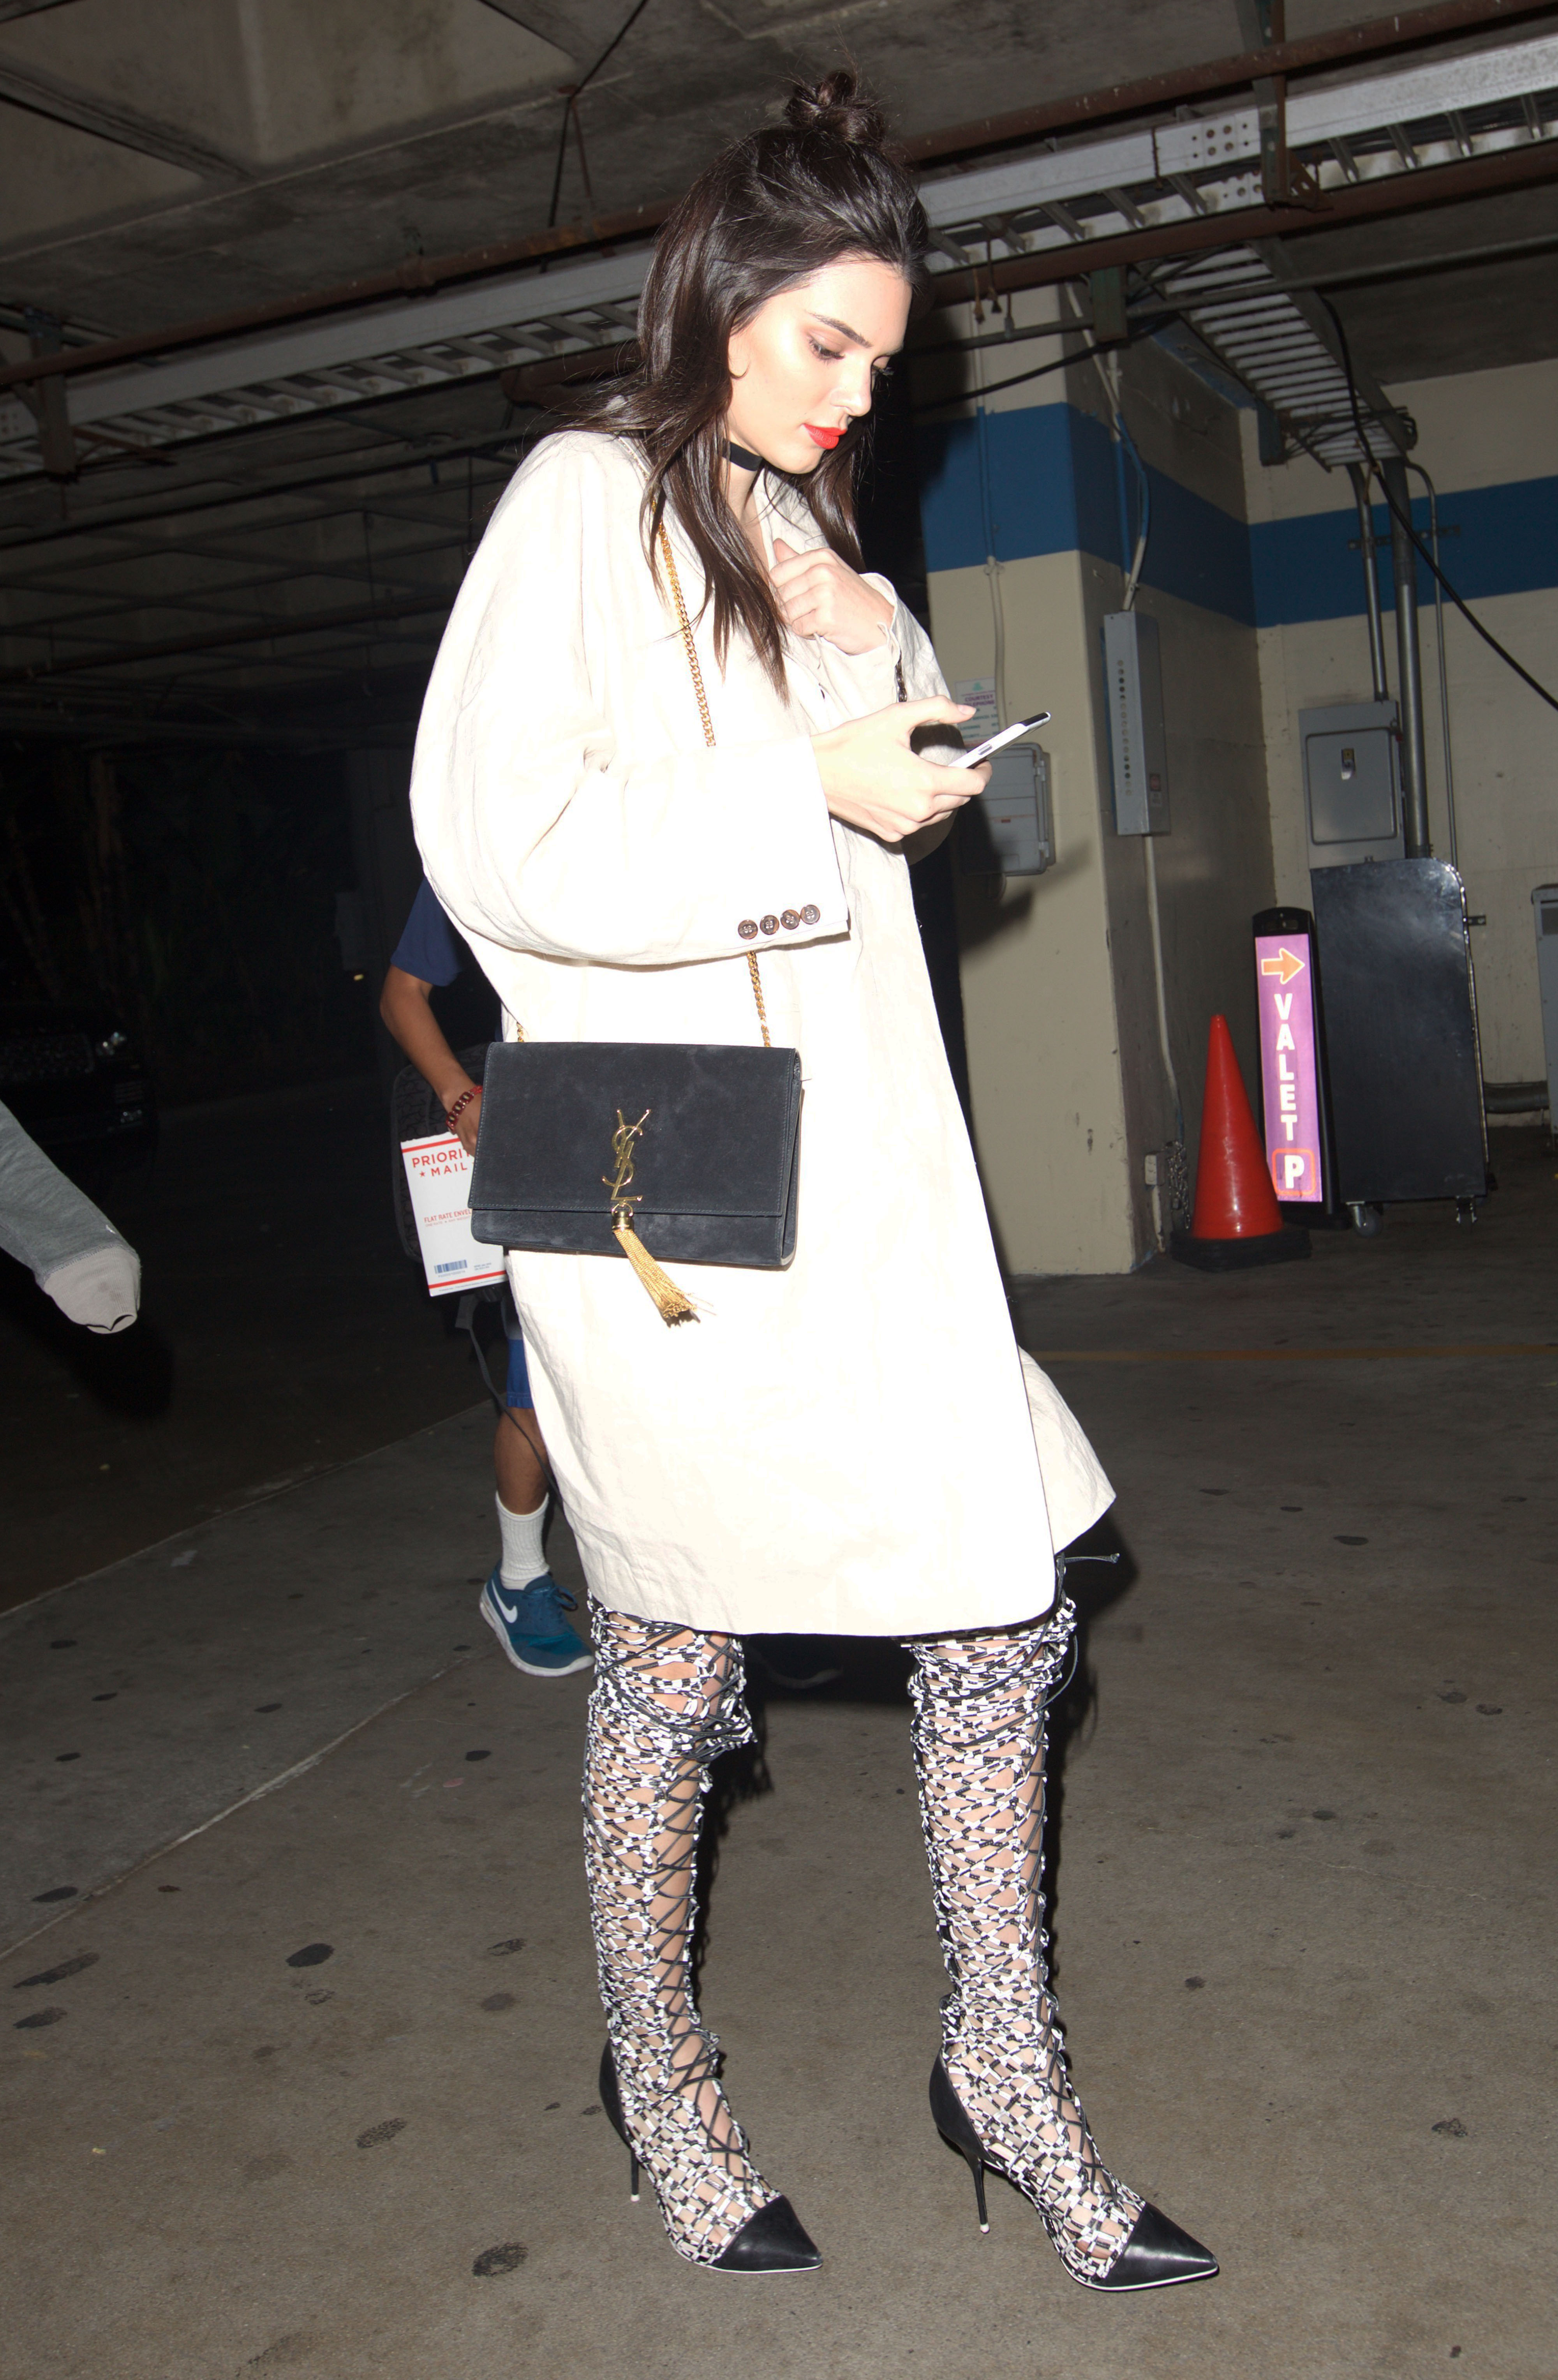 Model Kendall Jenneris is spotted as she leaves The Nice Guy in Los Angeles Pictured: Kendall Jenner leaves The Nice Guy in LA Ref: SPL1247370 150316 Picture by: Pap Nation / Splash News Splash News and Pictures Los Angeles:310-821-2666 New York: 212-619-2666 London: 870-934-2666 photodesk@splashnews.com